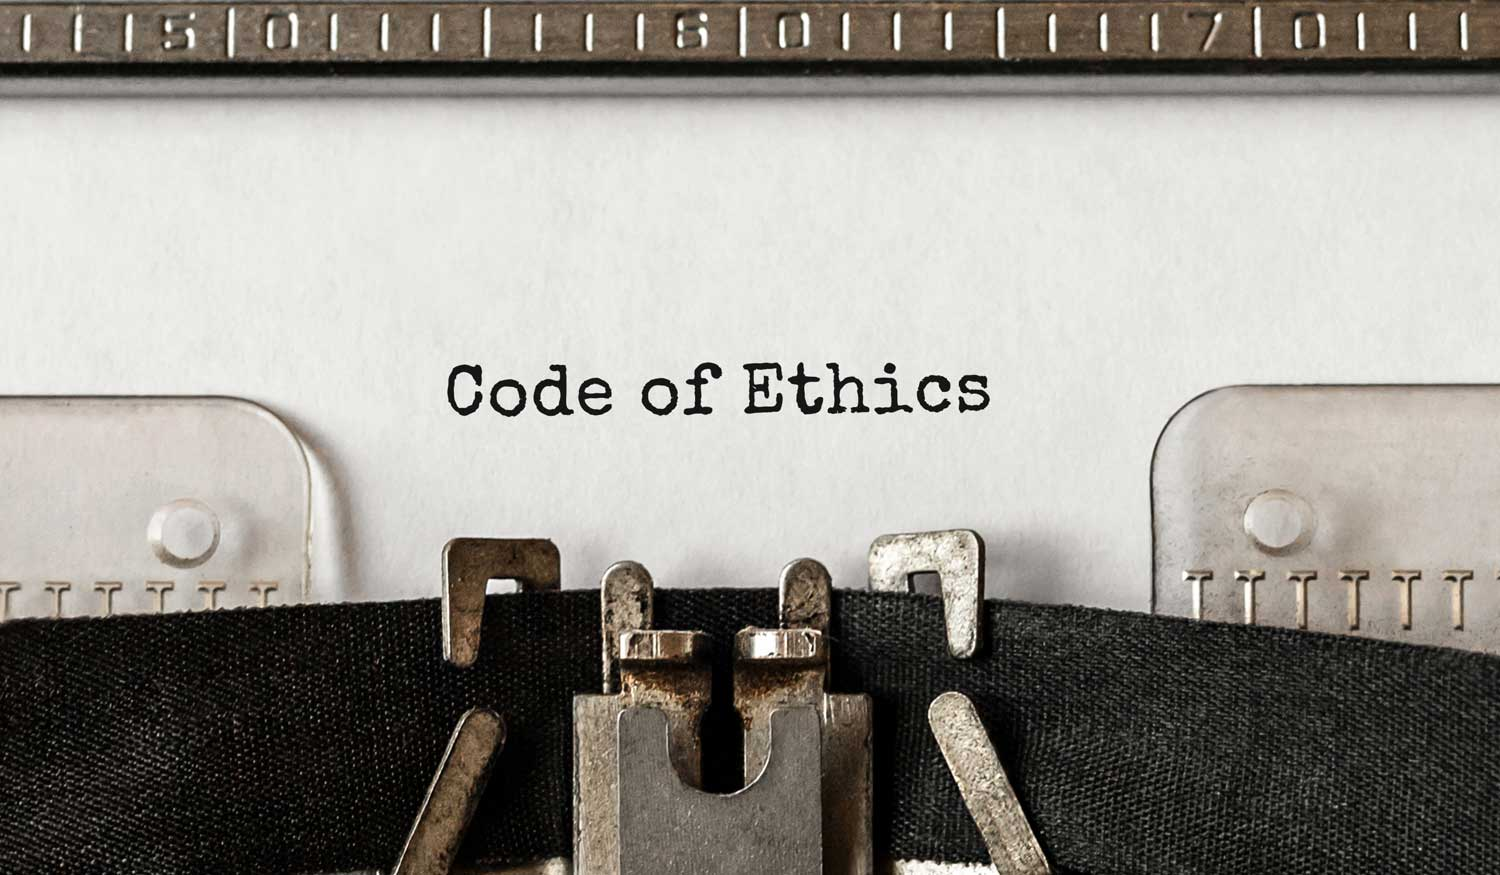 Is repairing your online reputation ethical?